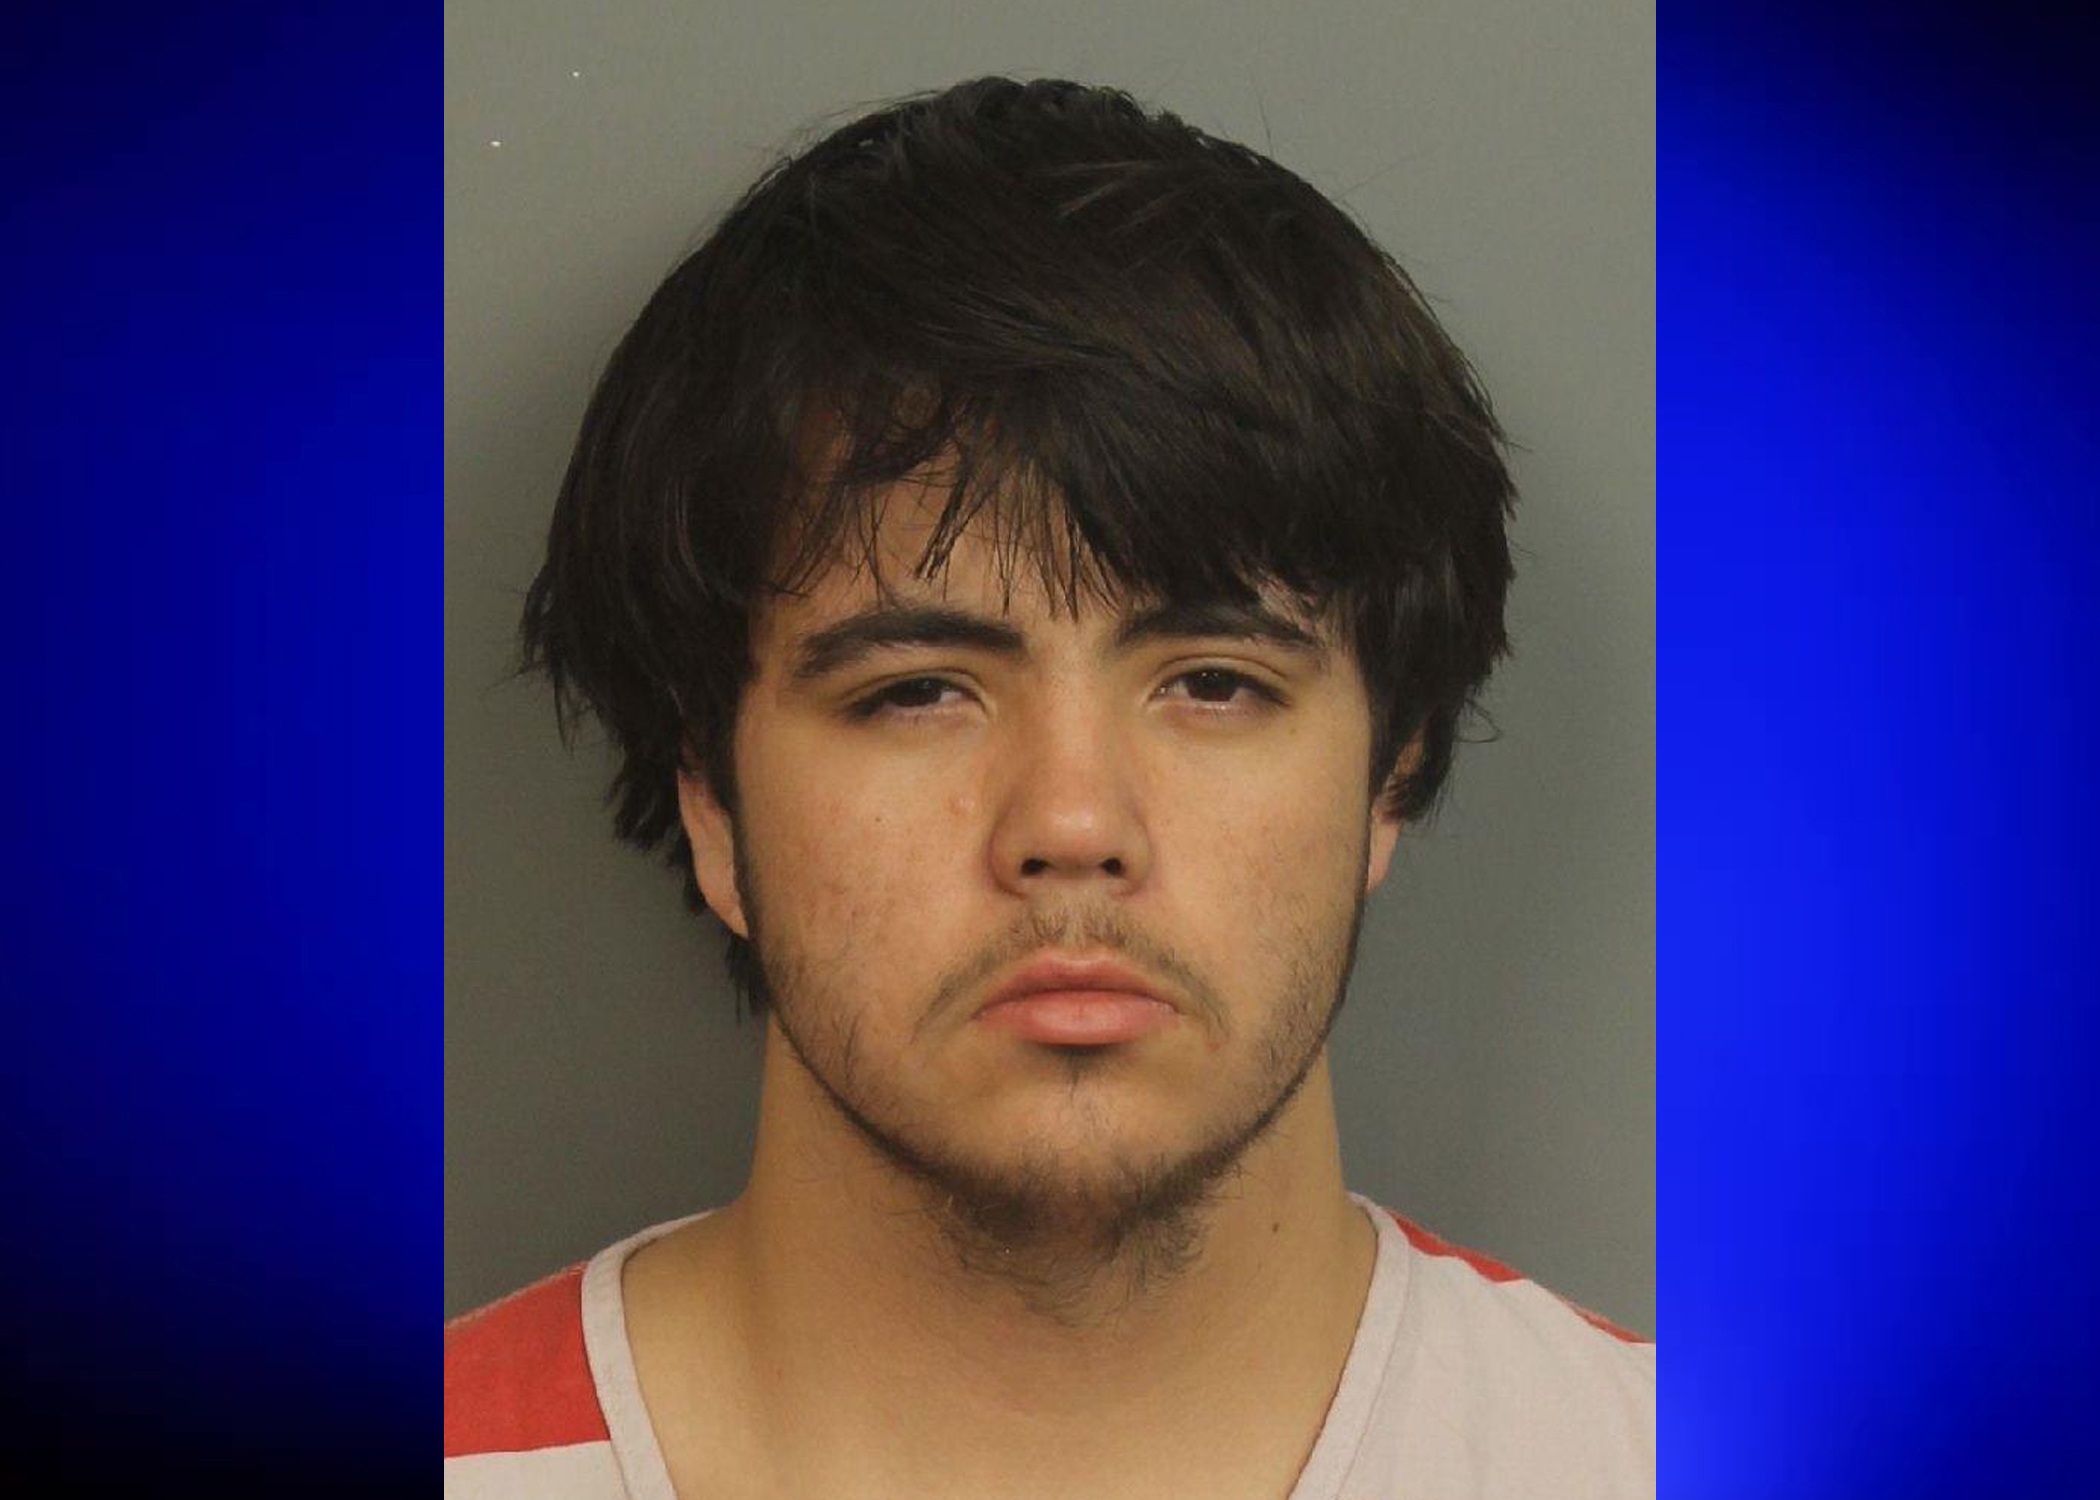 Trussville teen wanted on robbery charges captured